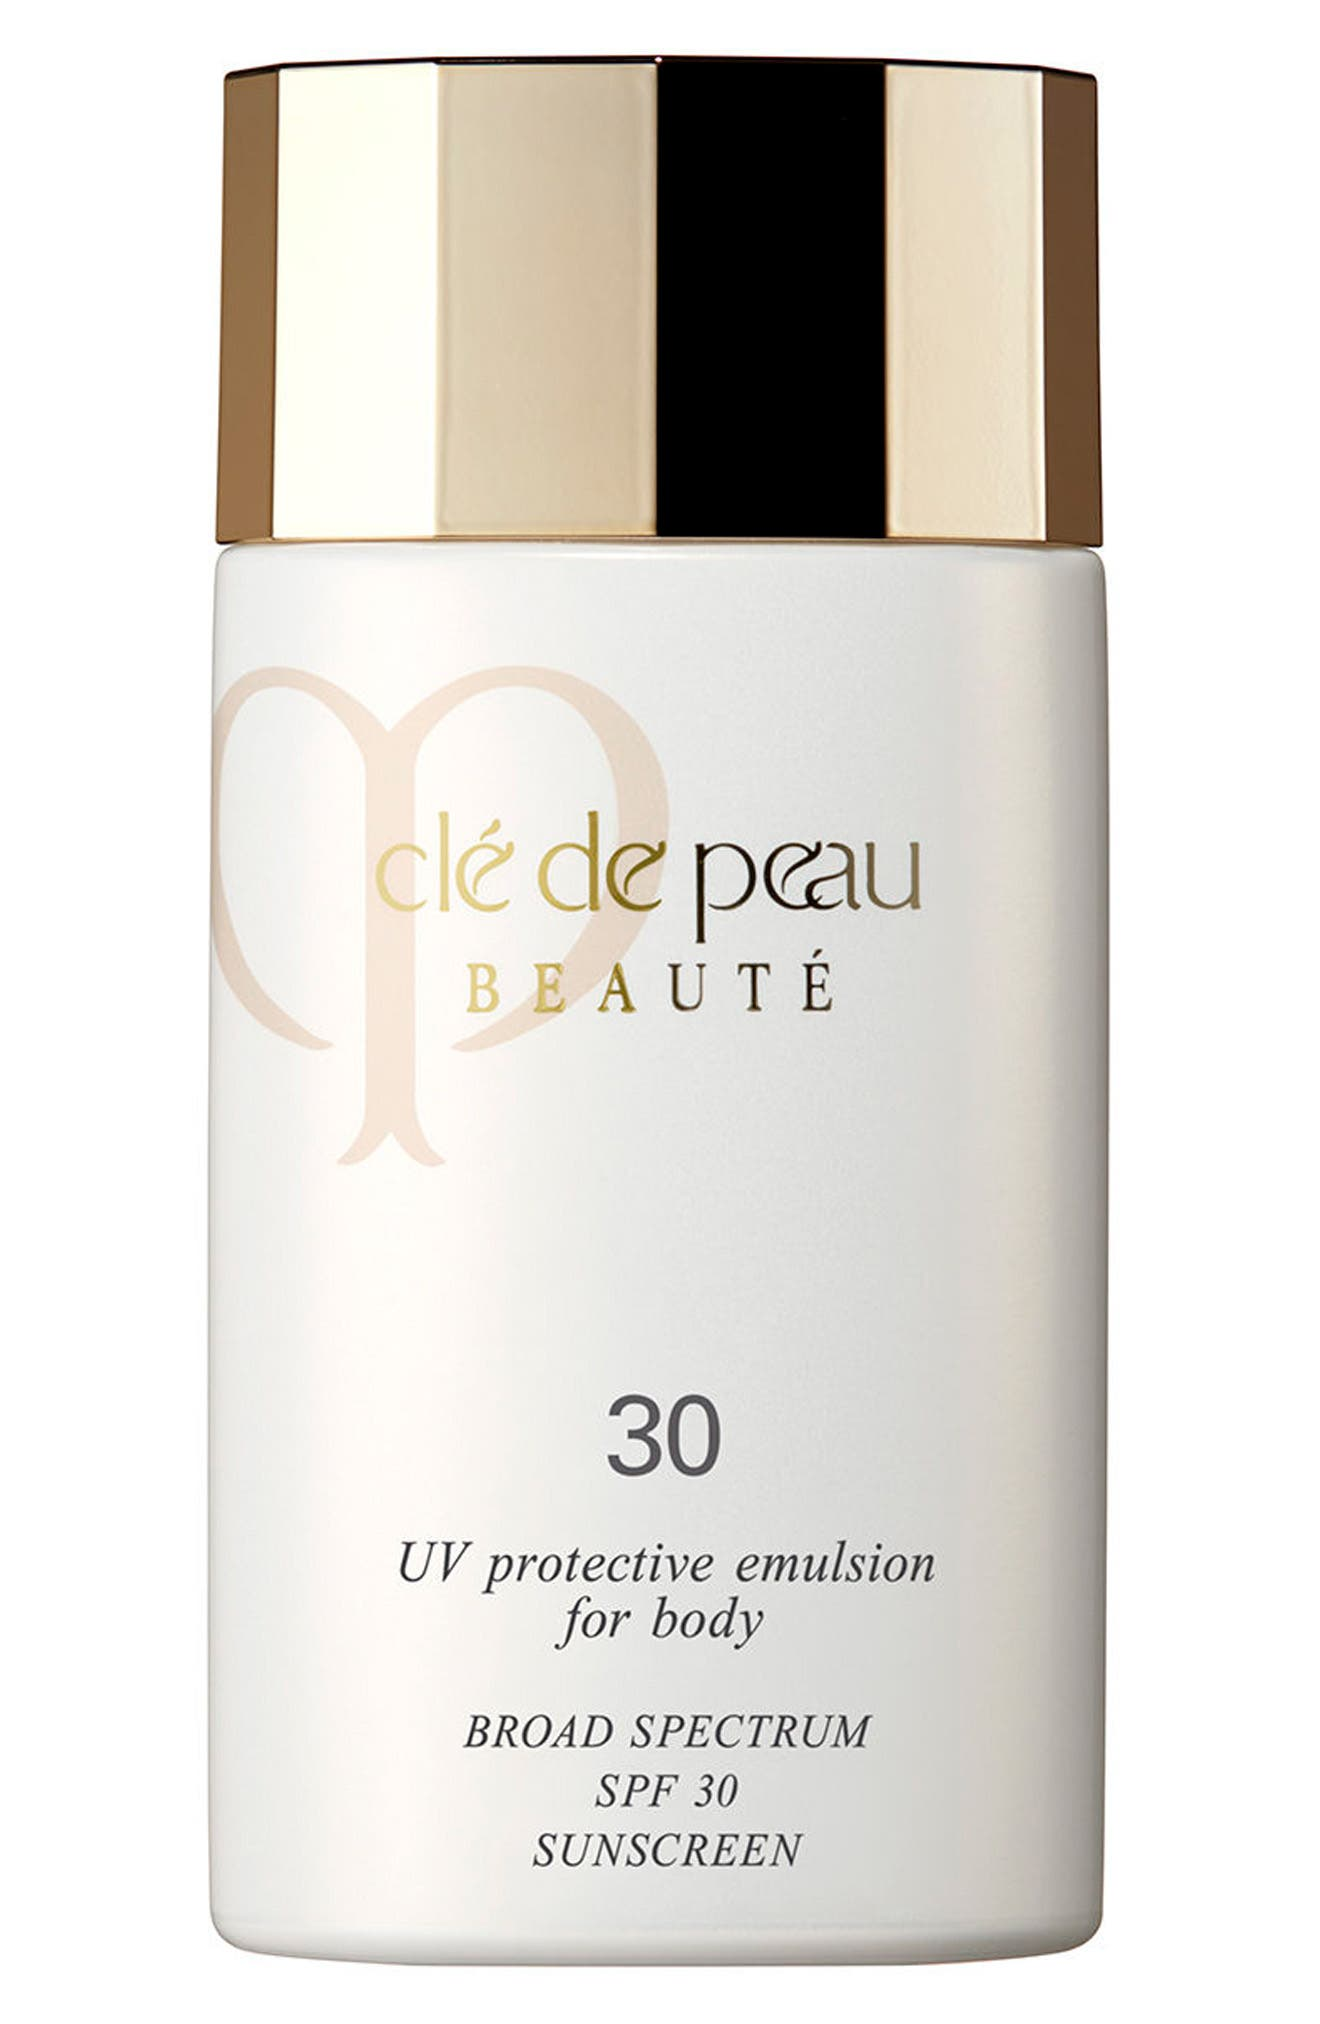 Clé de Peau Beauté UV Protective Emulsion for Body Broad Spectrum SPF 30